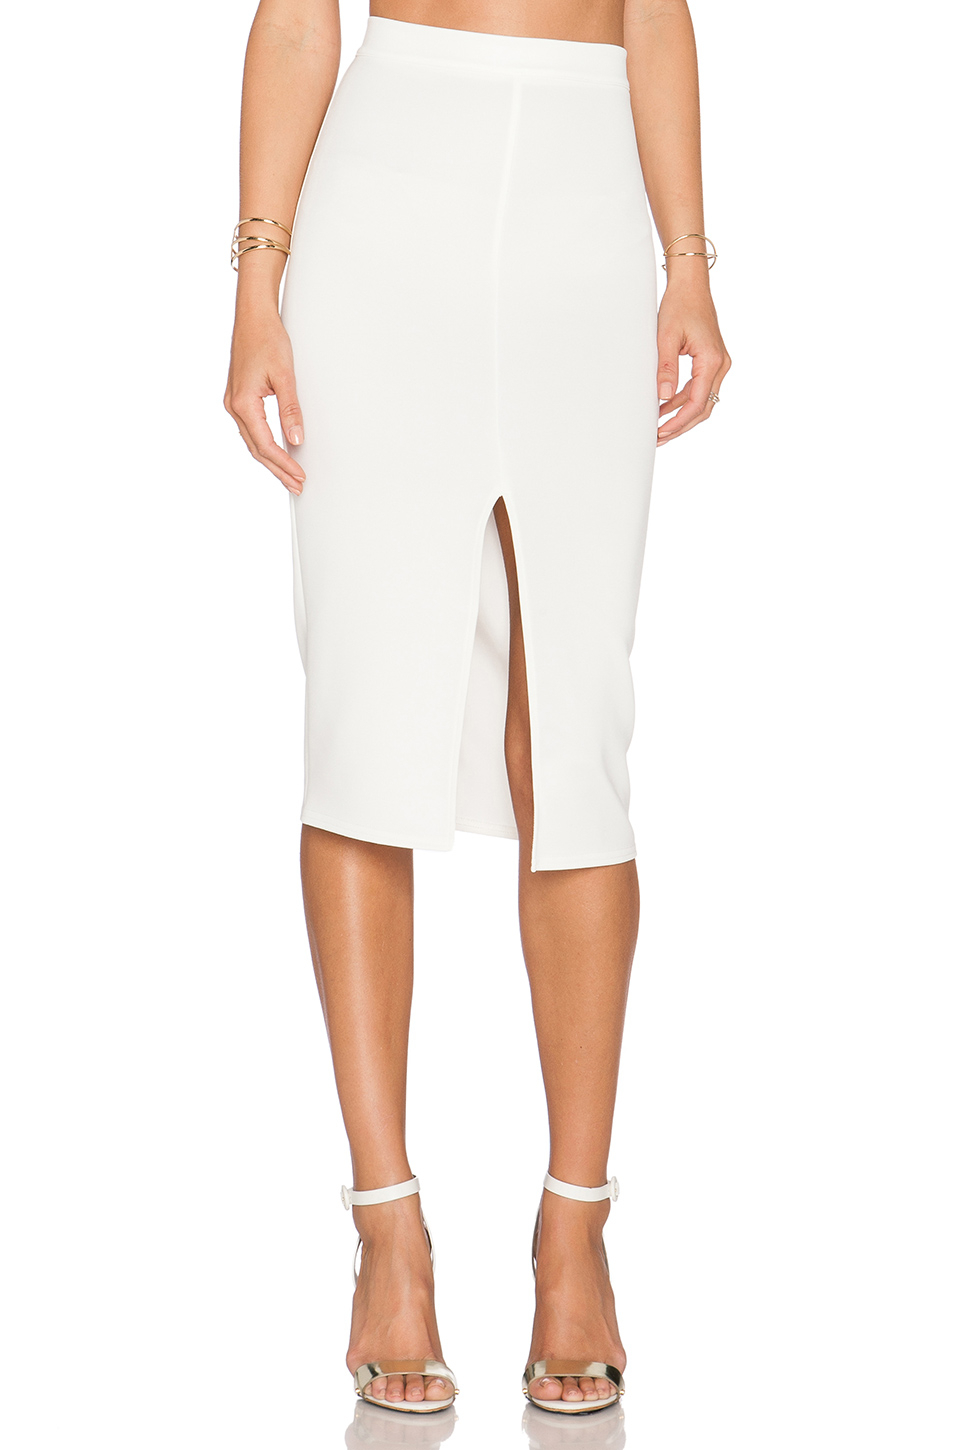 bodycon pencil skirt in white lyst